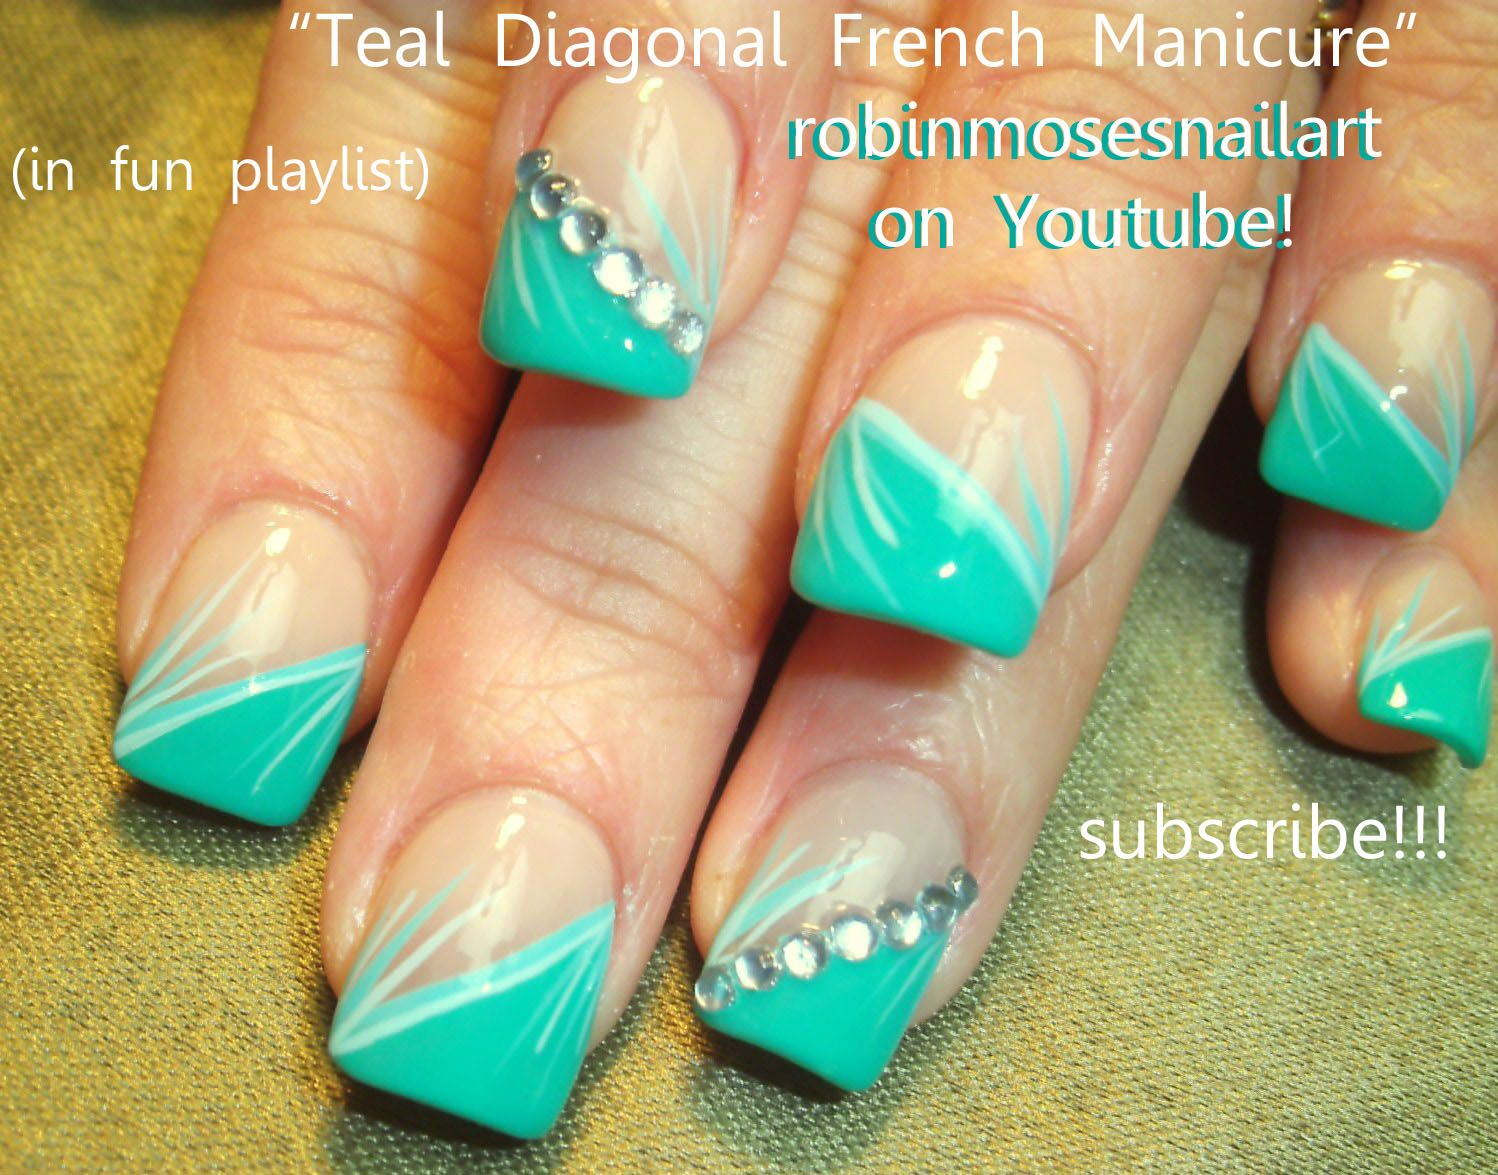 Pattern nail art designs fancy nail art for prom simple nail art lines - French Manicure Designs Teal Diagonal French Manicure Nail Art 770